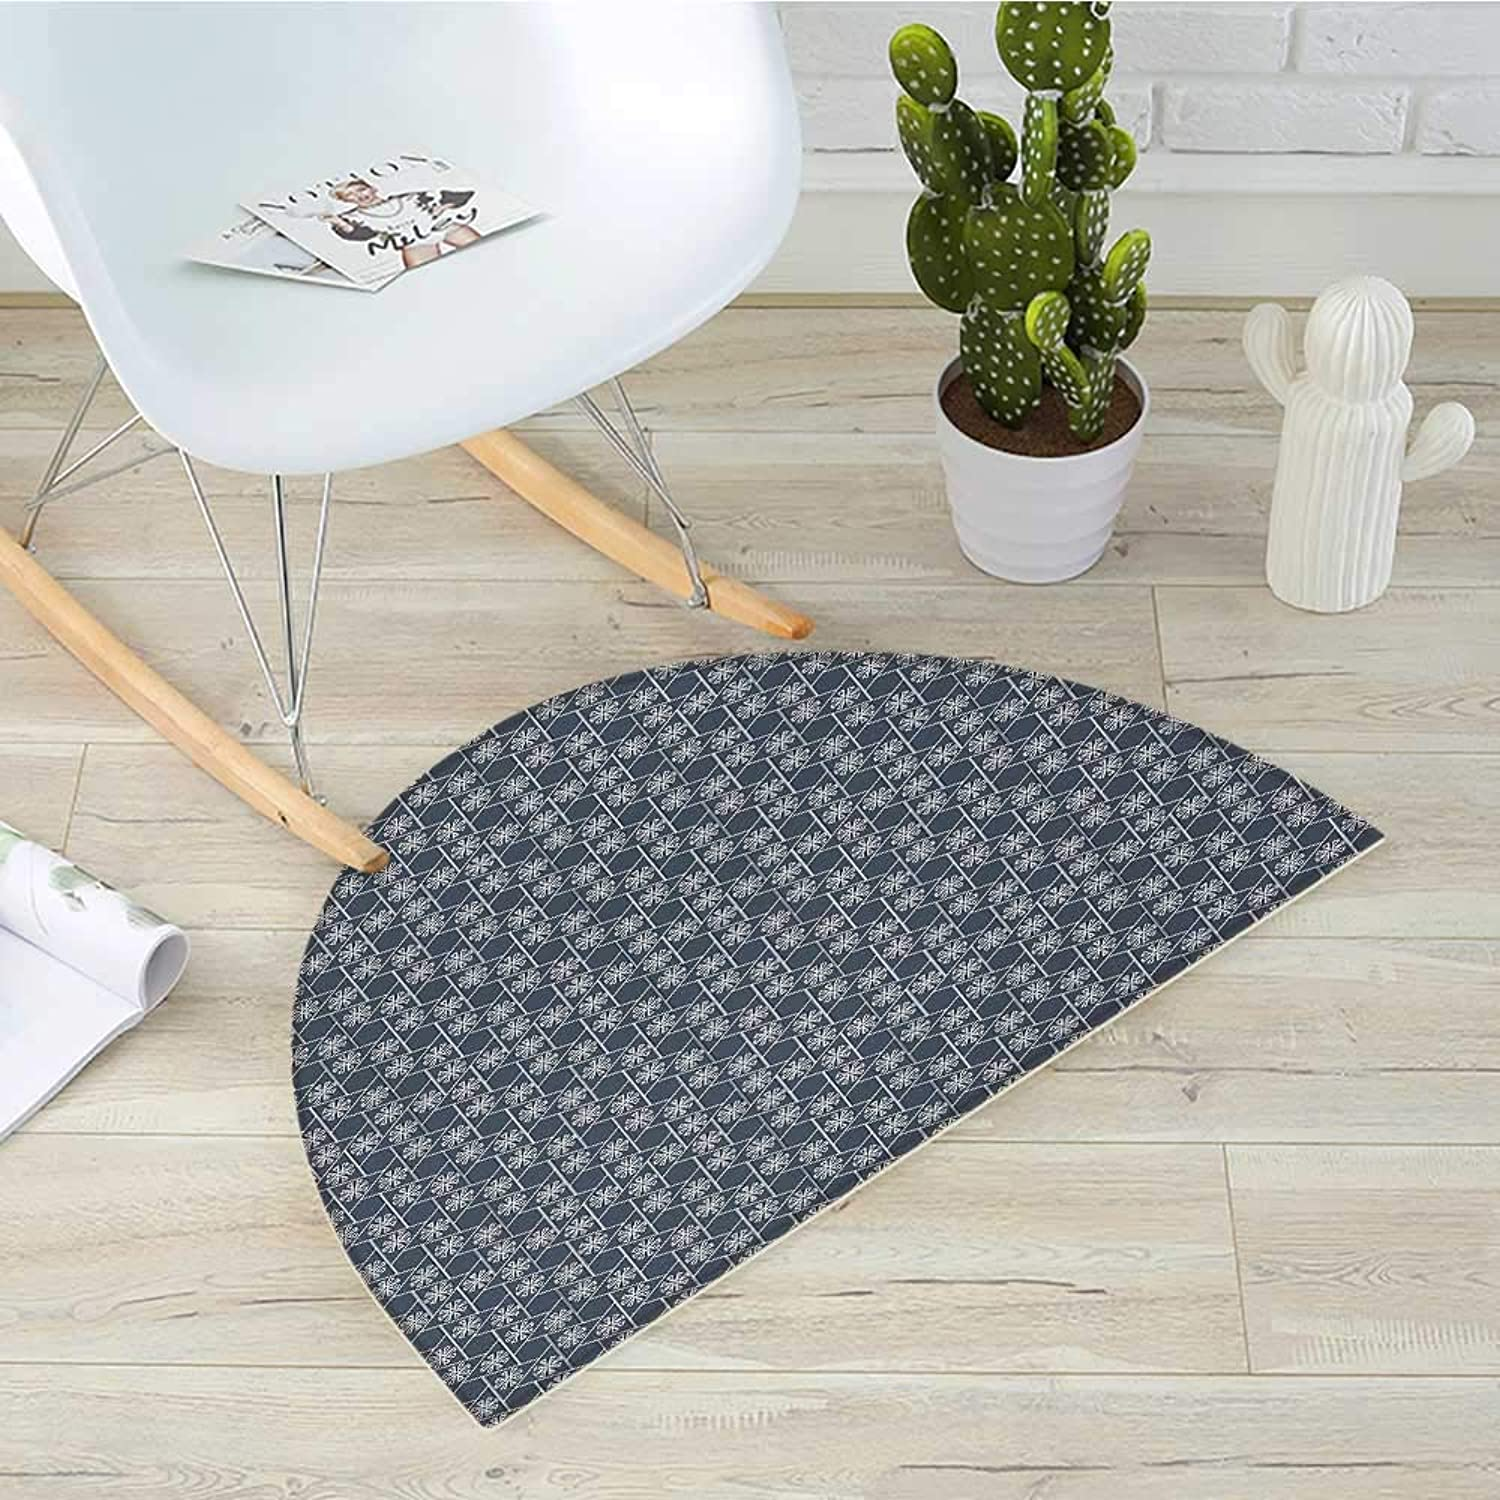 Japanese Semicircular CushionHexagons Triangles with Spring Flowers Eastern Geometric Tile Entry Door Mat H 39.3  xD 59  Charcoal Grey Dark bluee White